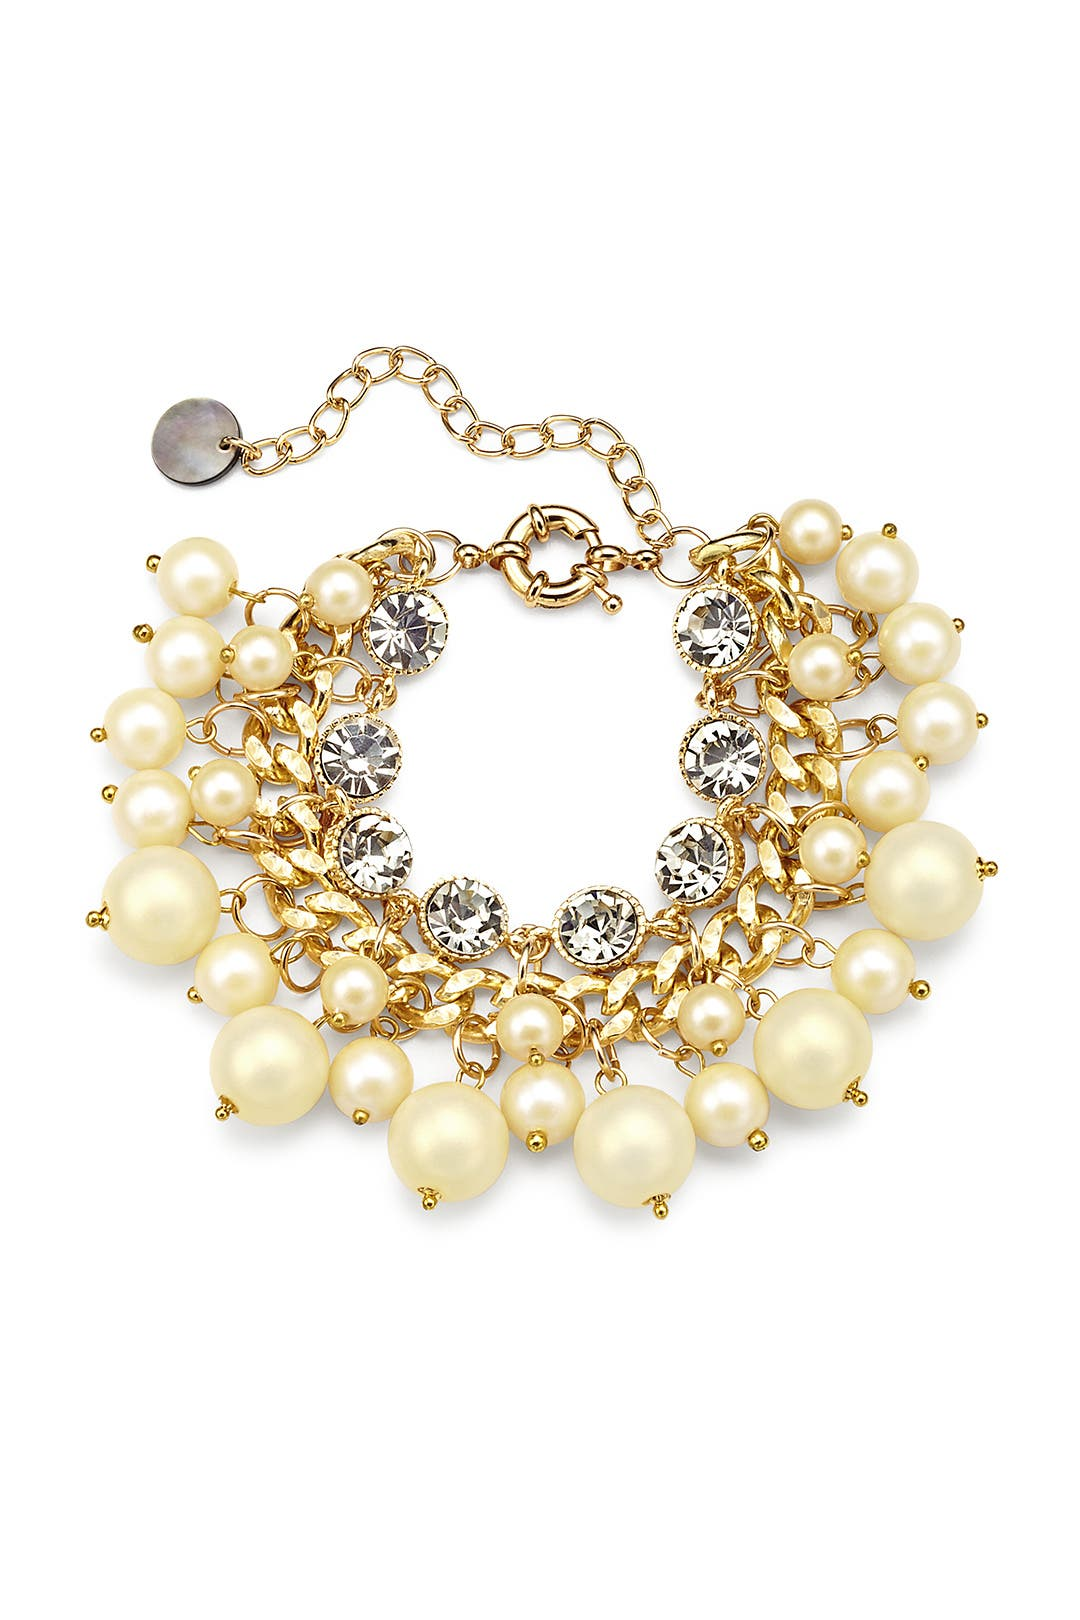 Ladies Who Brunch Bracelet by Slate & Willow Accessories